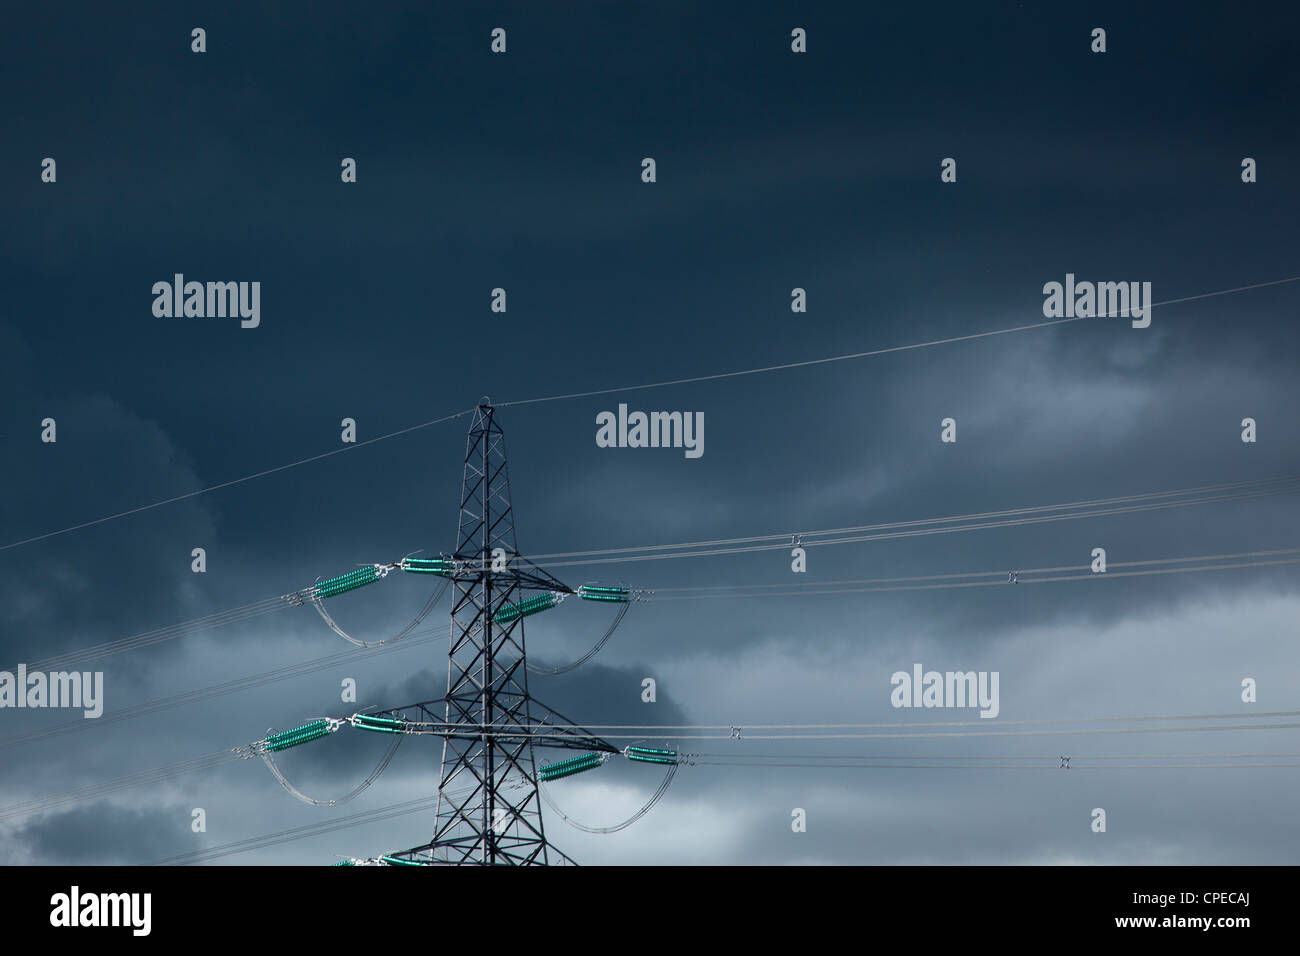 Electricity Pylon and power cables against dark stormy sky, England - Stock Image